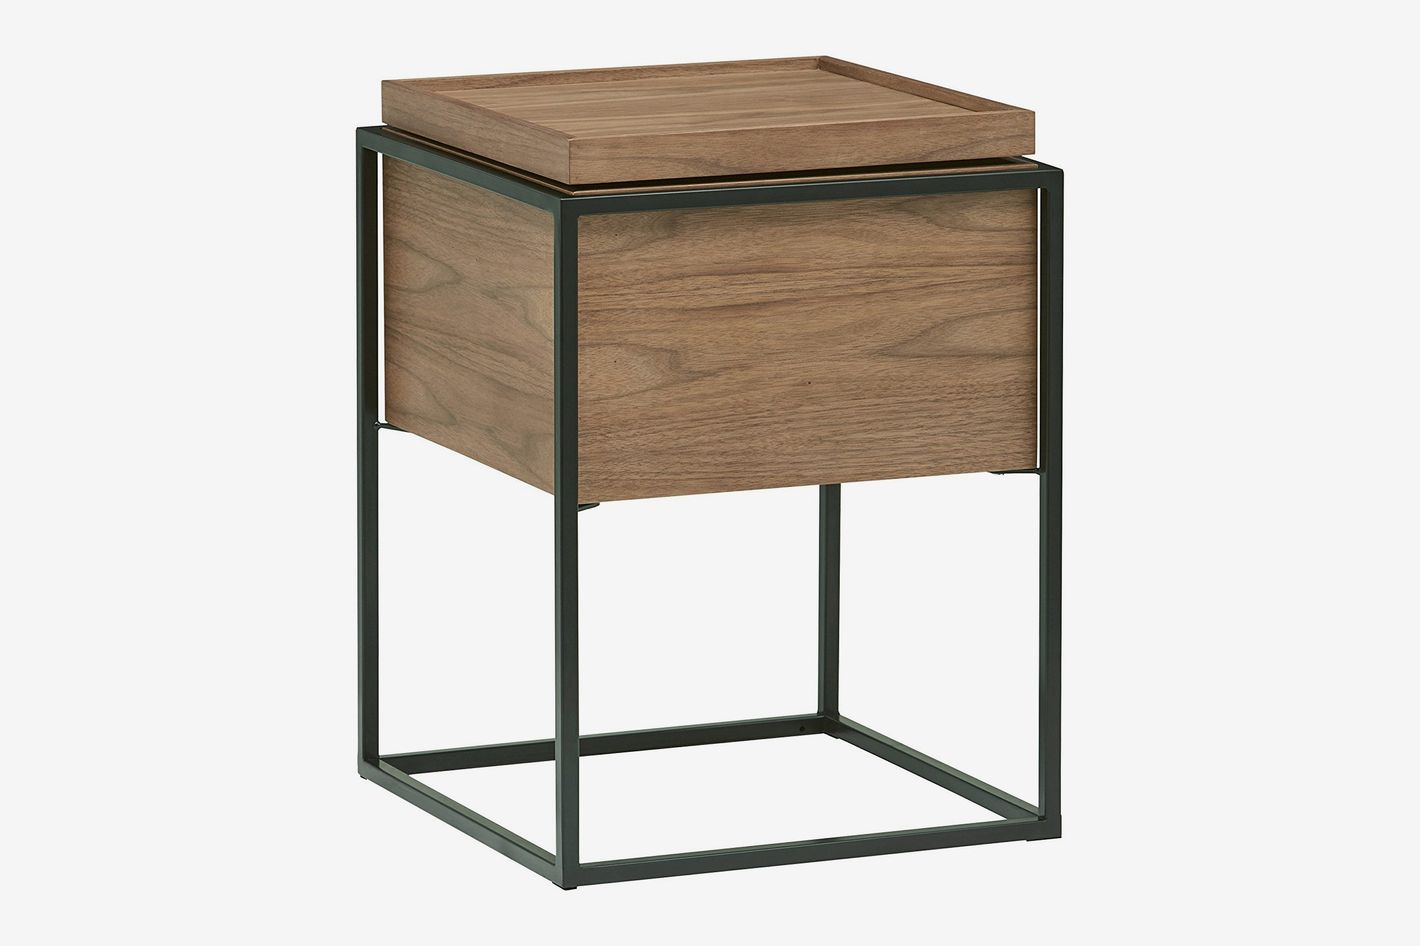 Rivet Axel Lid Storage Wood and Metal Side Table